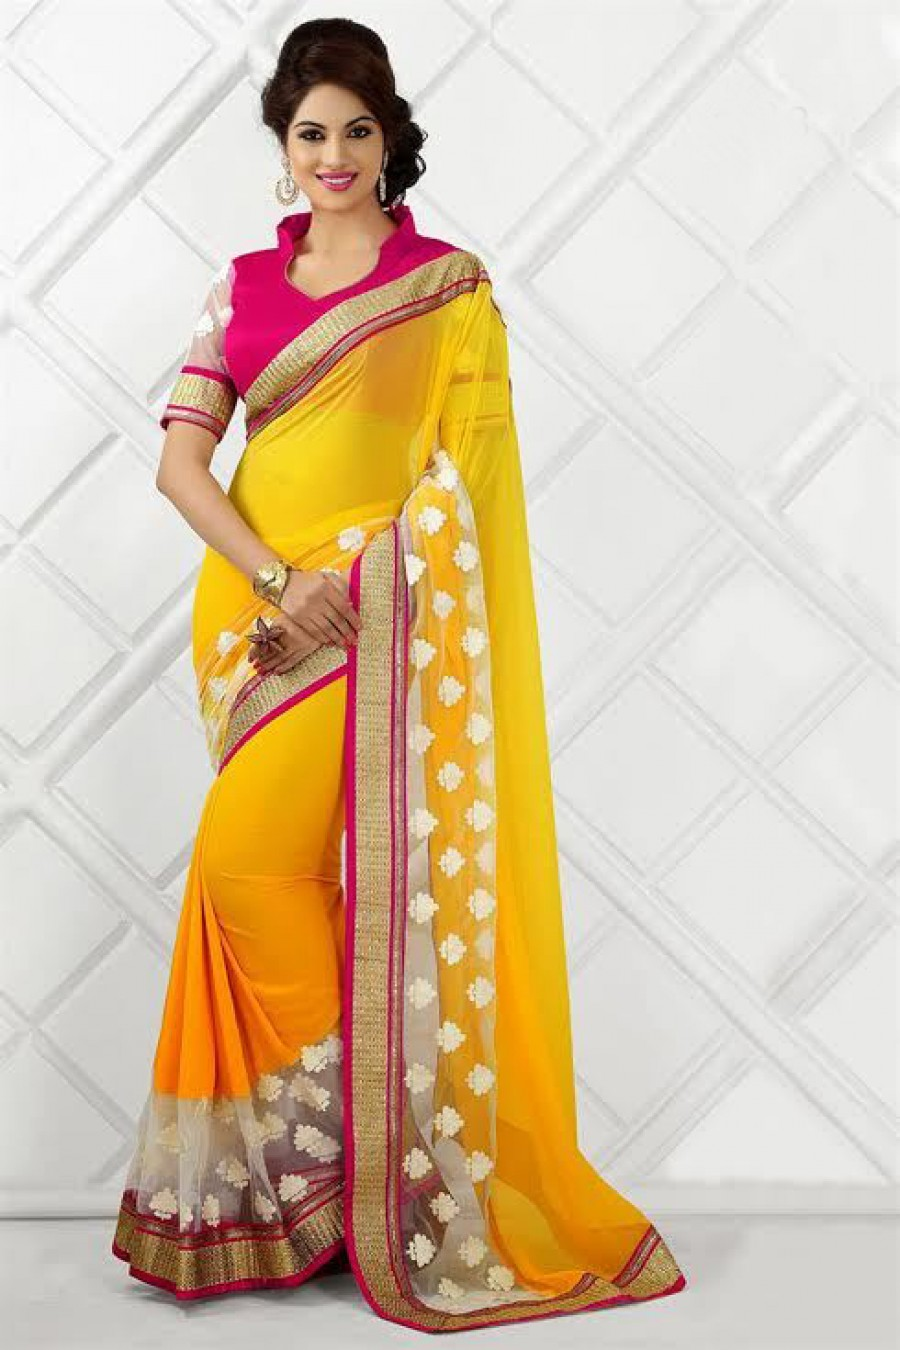 5d9d168de0a850 Buy Yellow georgette with white net worked belt designer saree with pink  artsilk blouse with comes